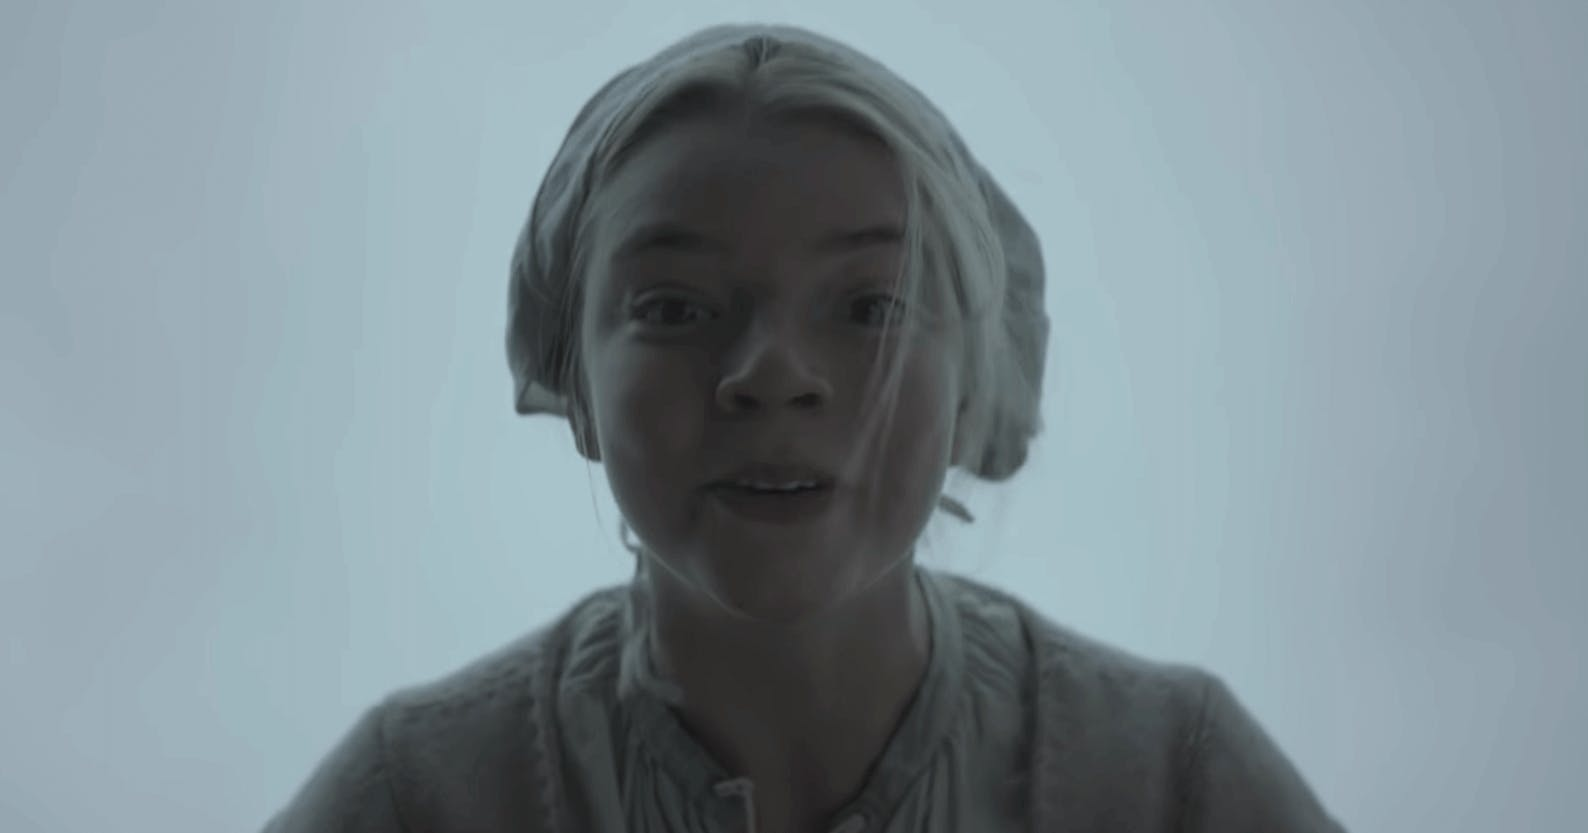 best scary movies on netflix: the witch